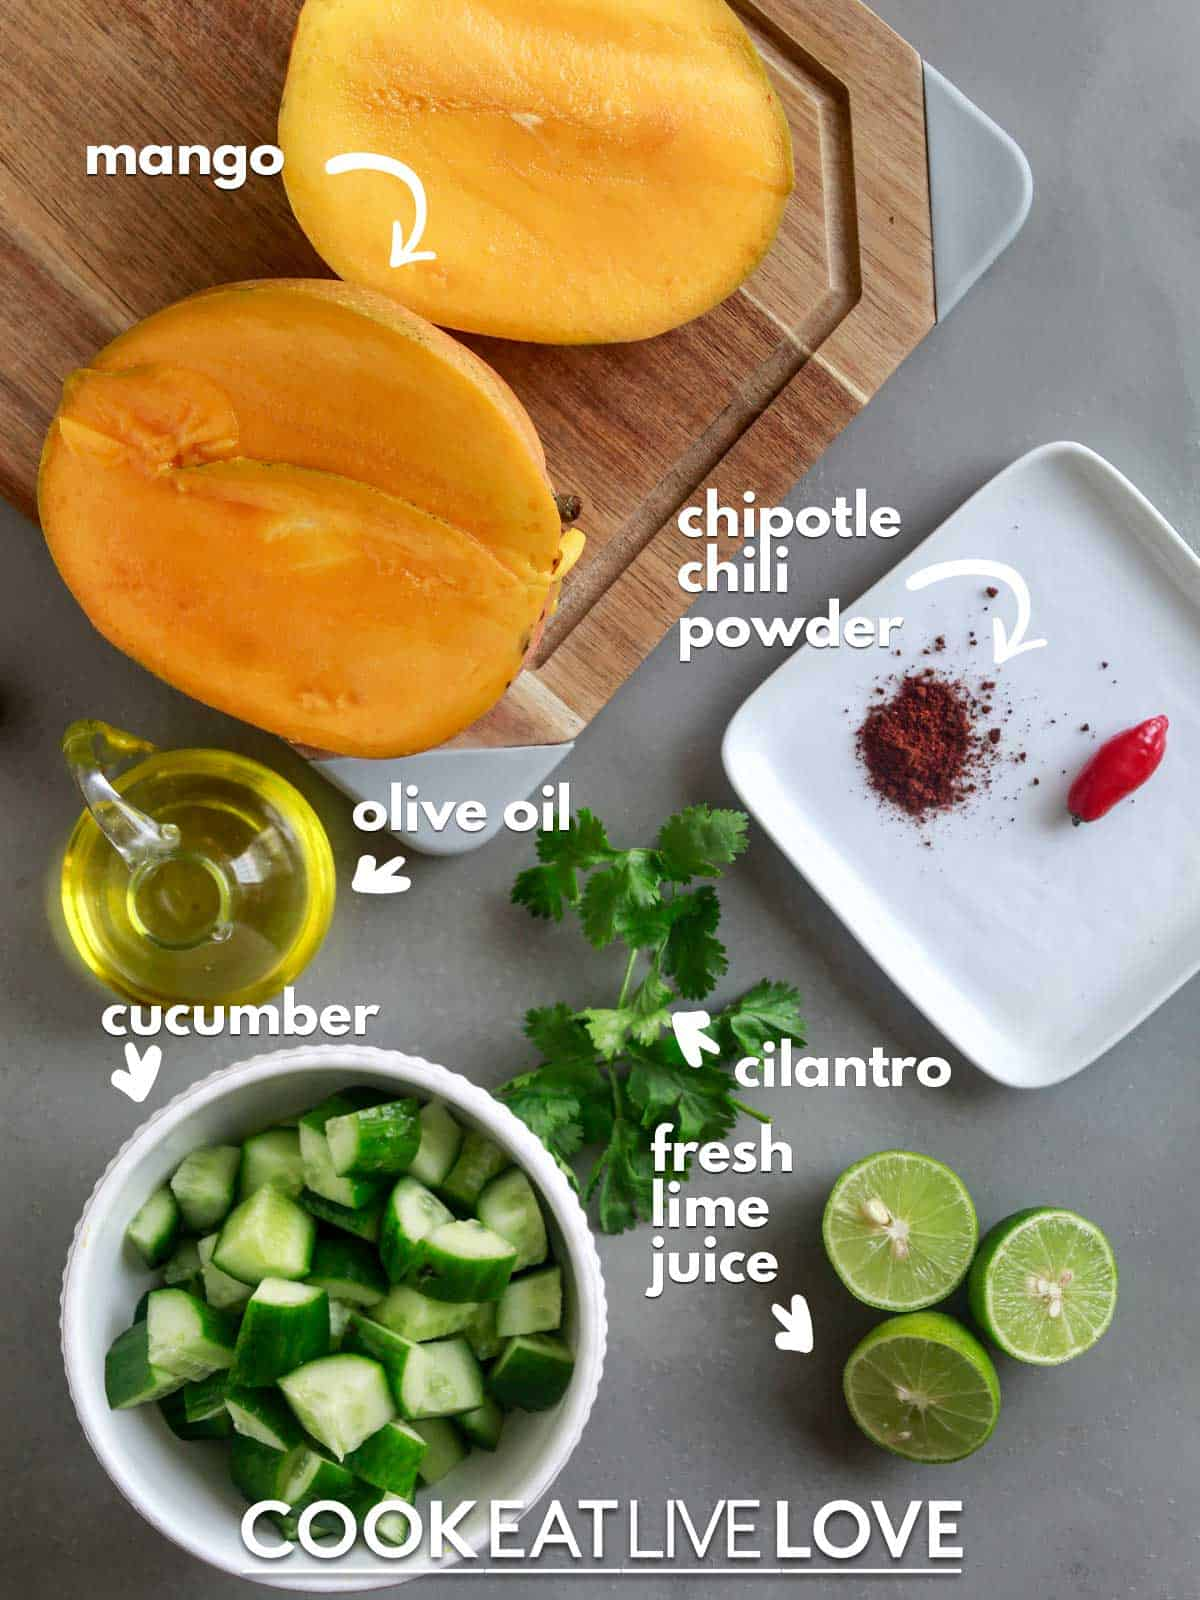 Ingredients to make mango cucumber salad on table with text